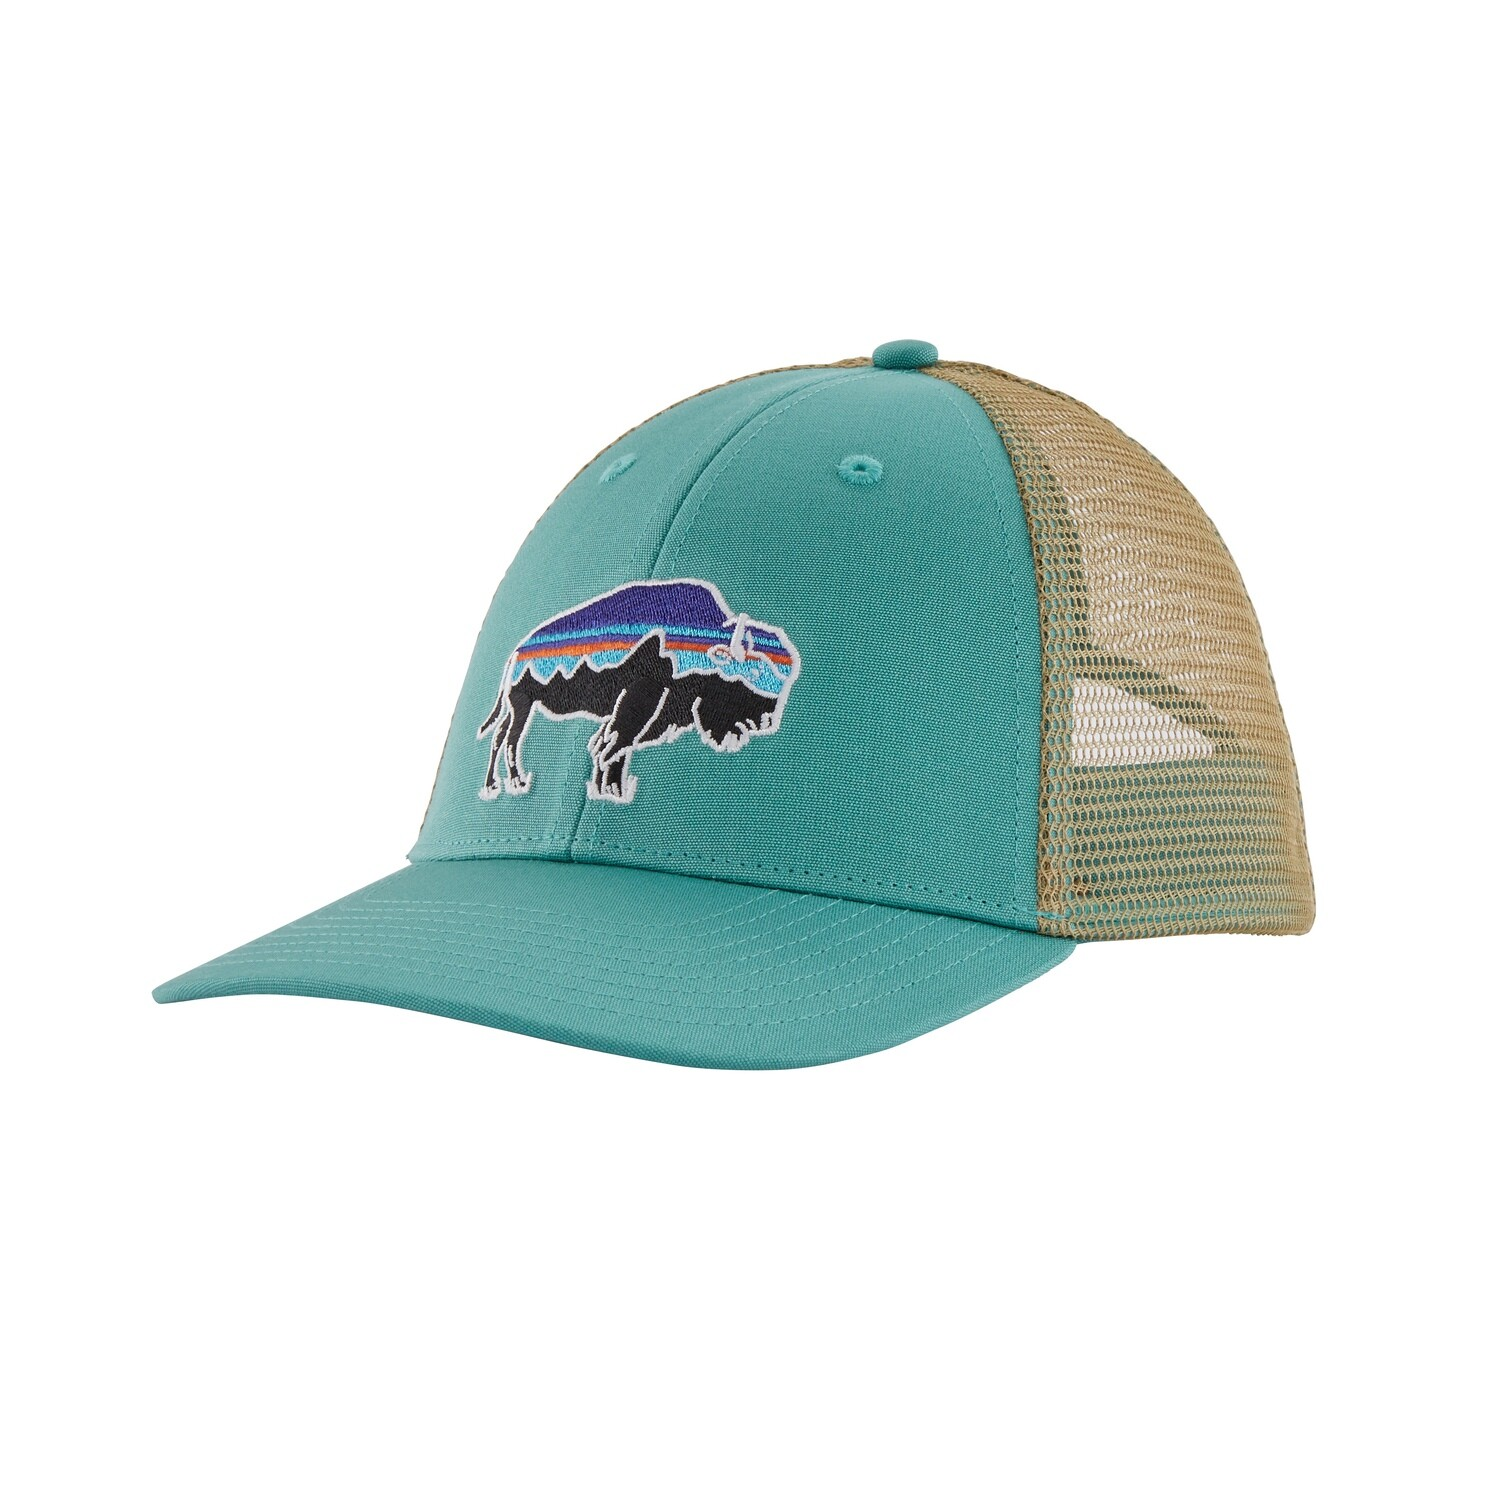 PATAGONIA FitzRoy Bison LoPro Hat